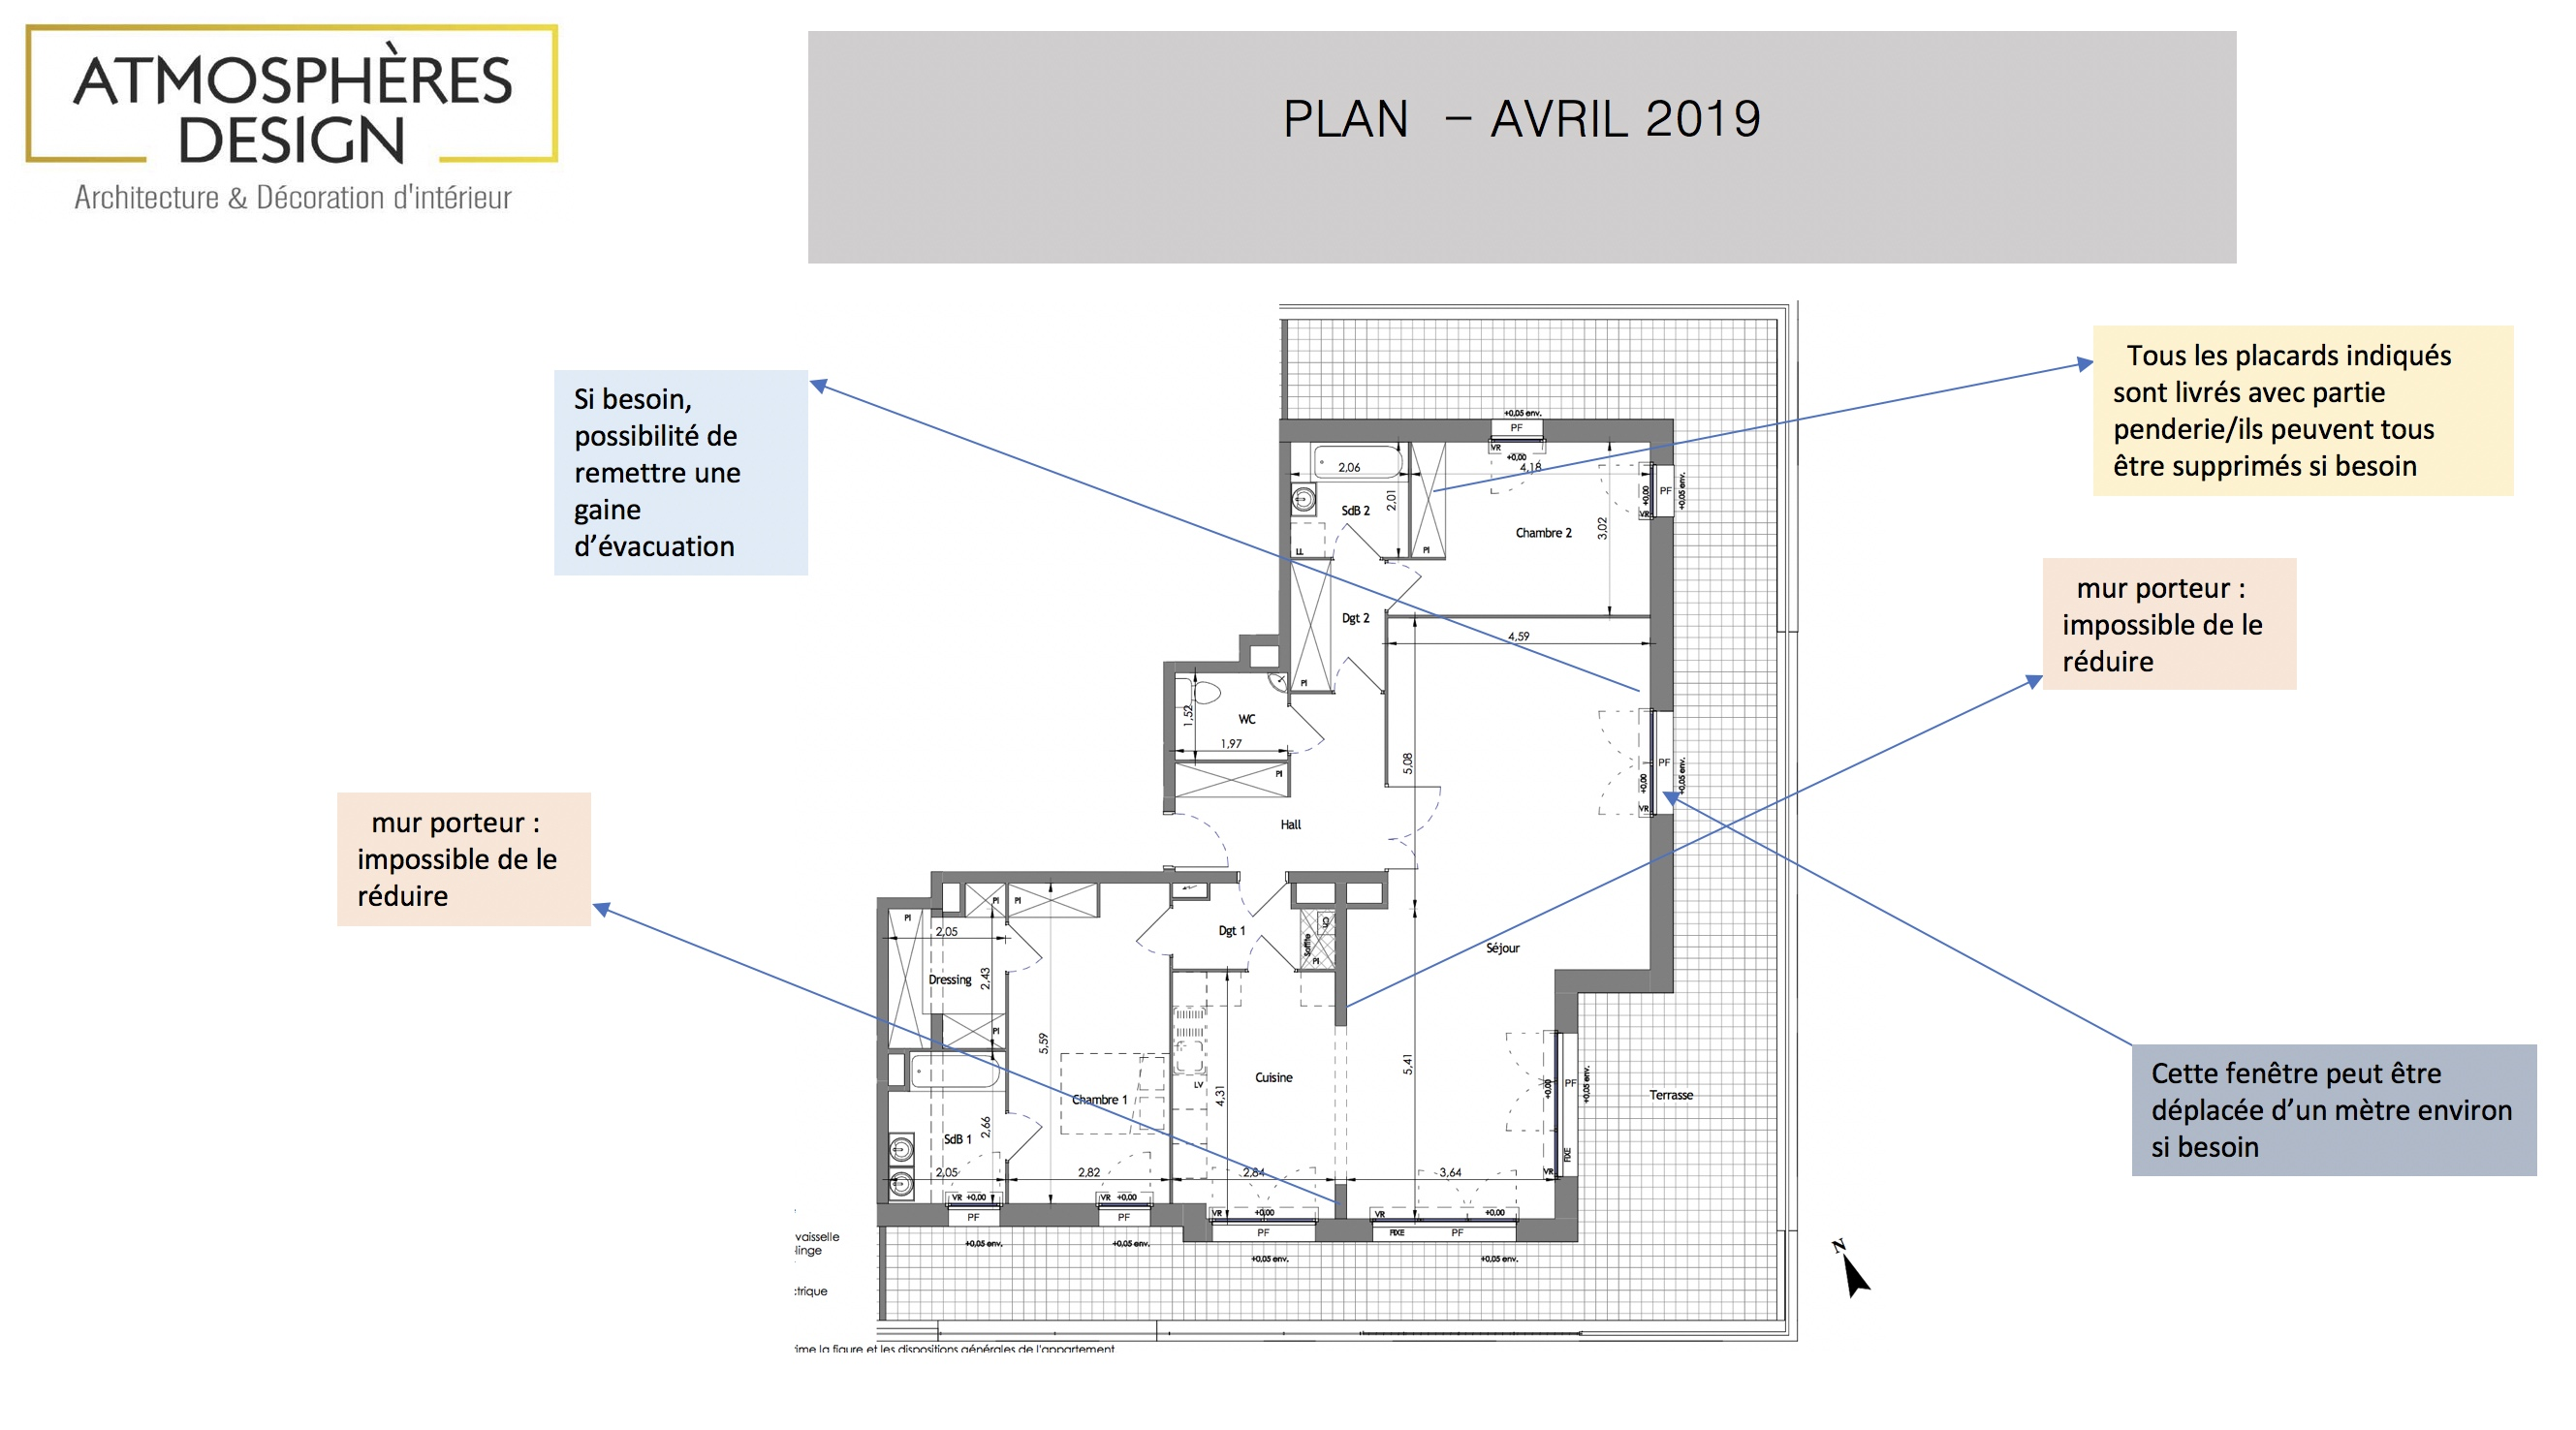 amiens-plan-amenagement-appartement-neuf-agence-atmospheres-design-patricia-coignard-audrey-pacaud-idee-deco-interior-deisgn